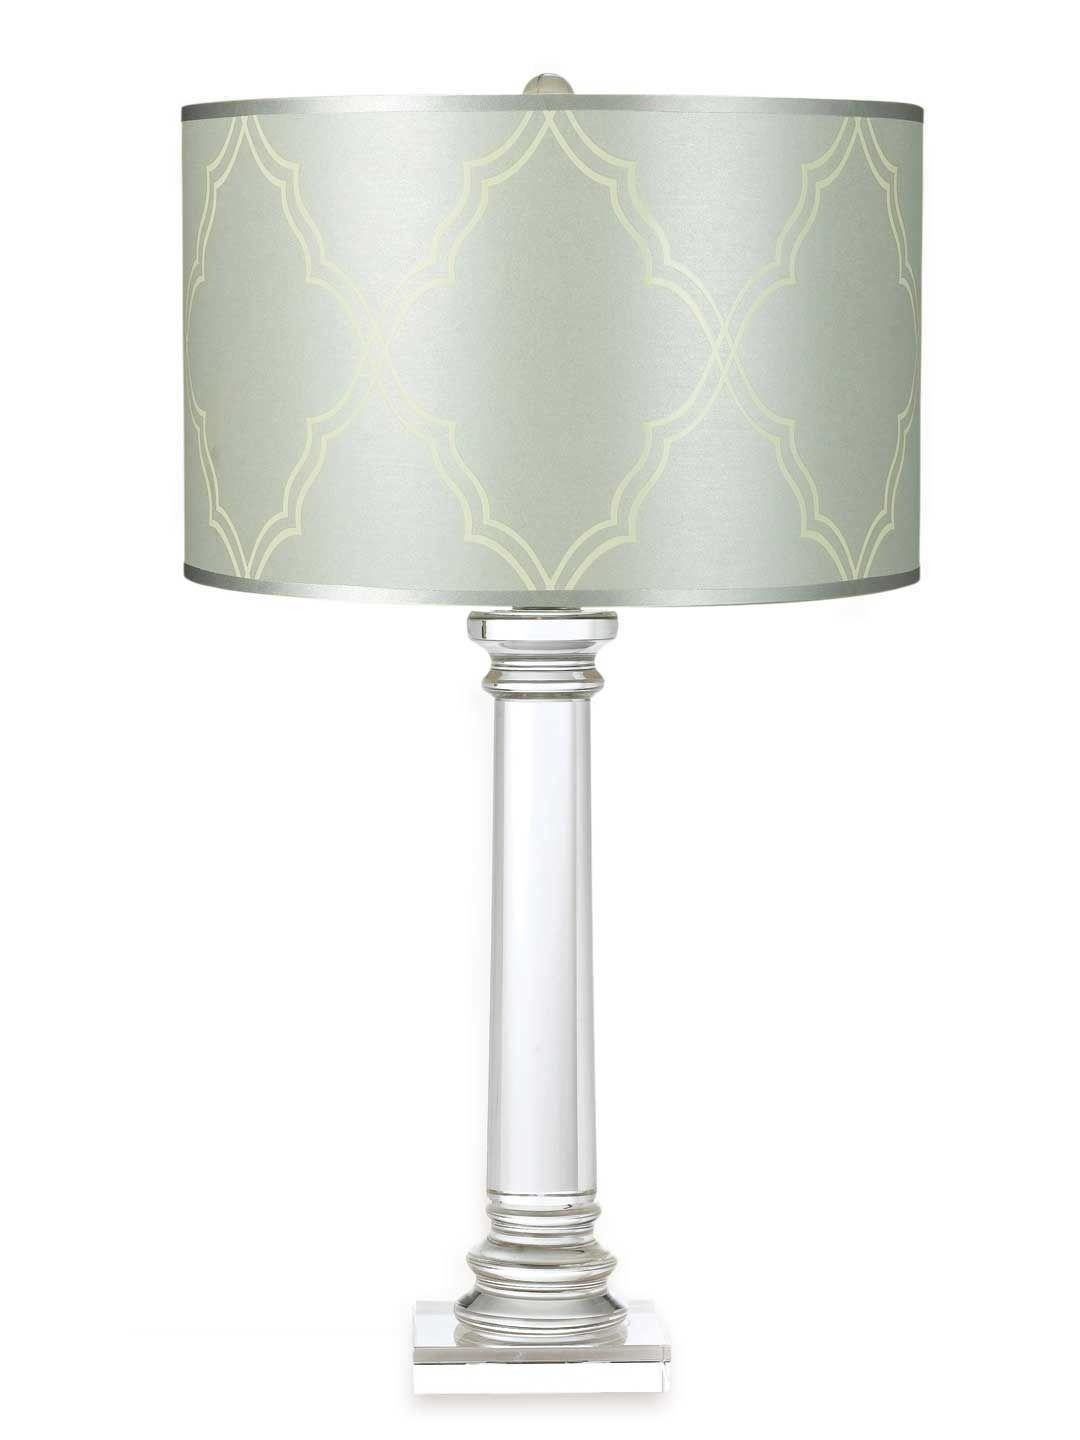 Trellis crystal table lamp candice olson collection 249 trellis crystal table lamp candice olson collection 249 geotapseo Image collections